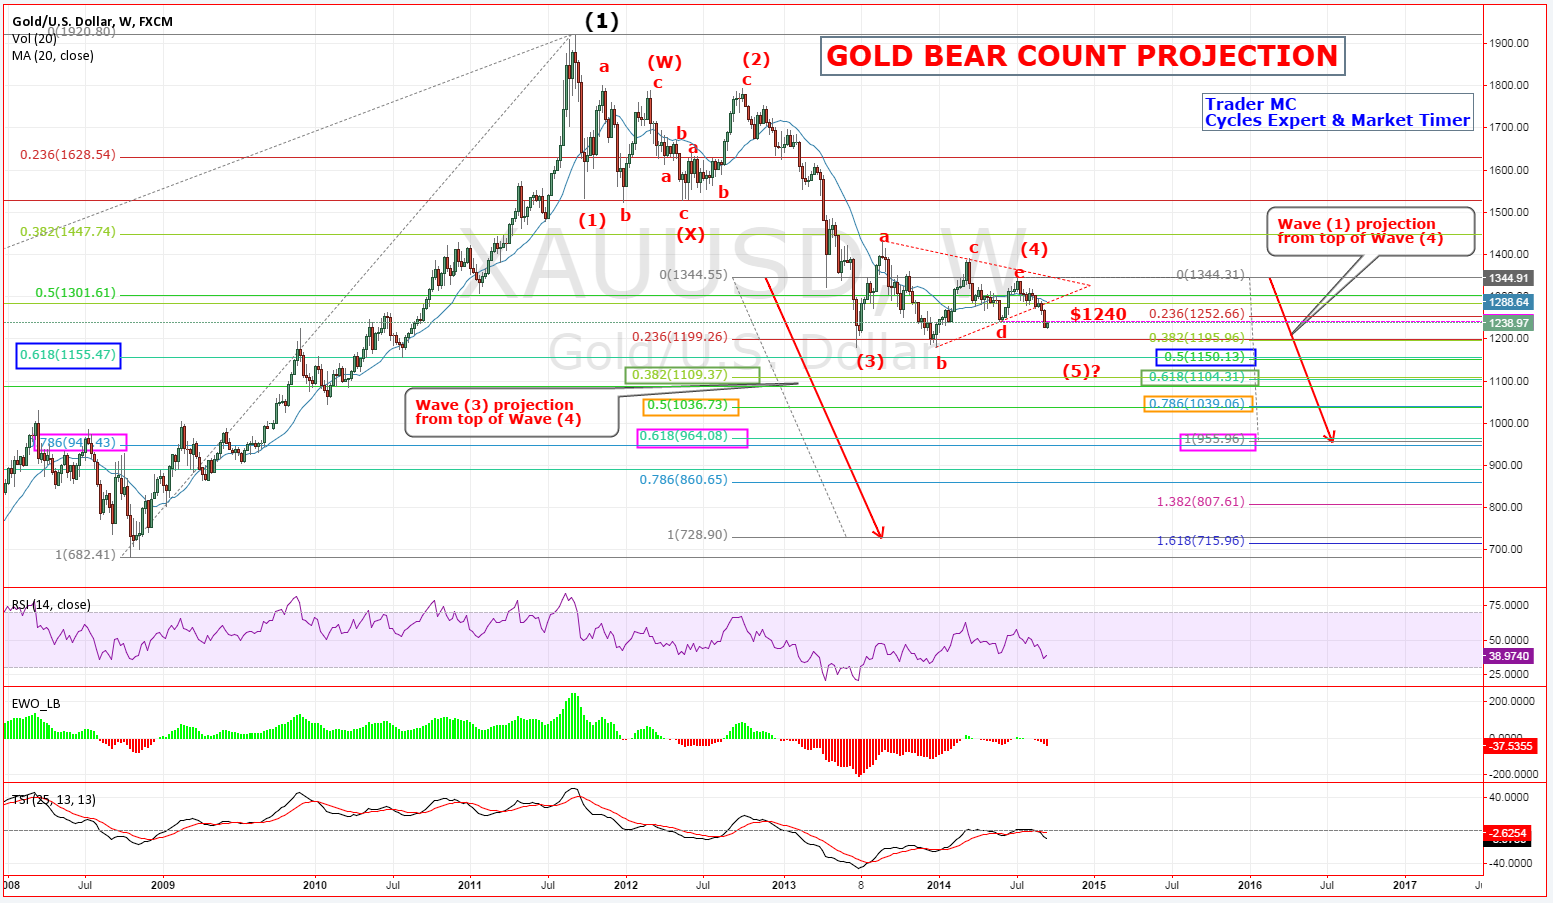 Gold's Bear-Count Projection